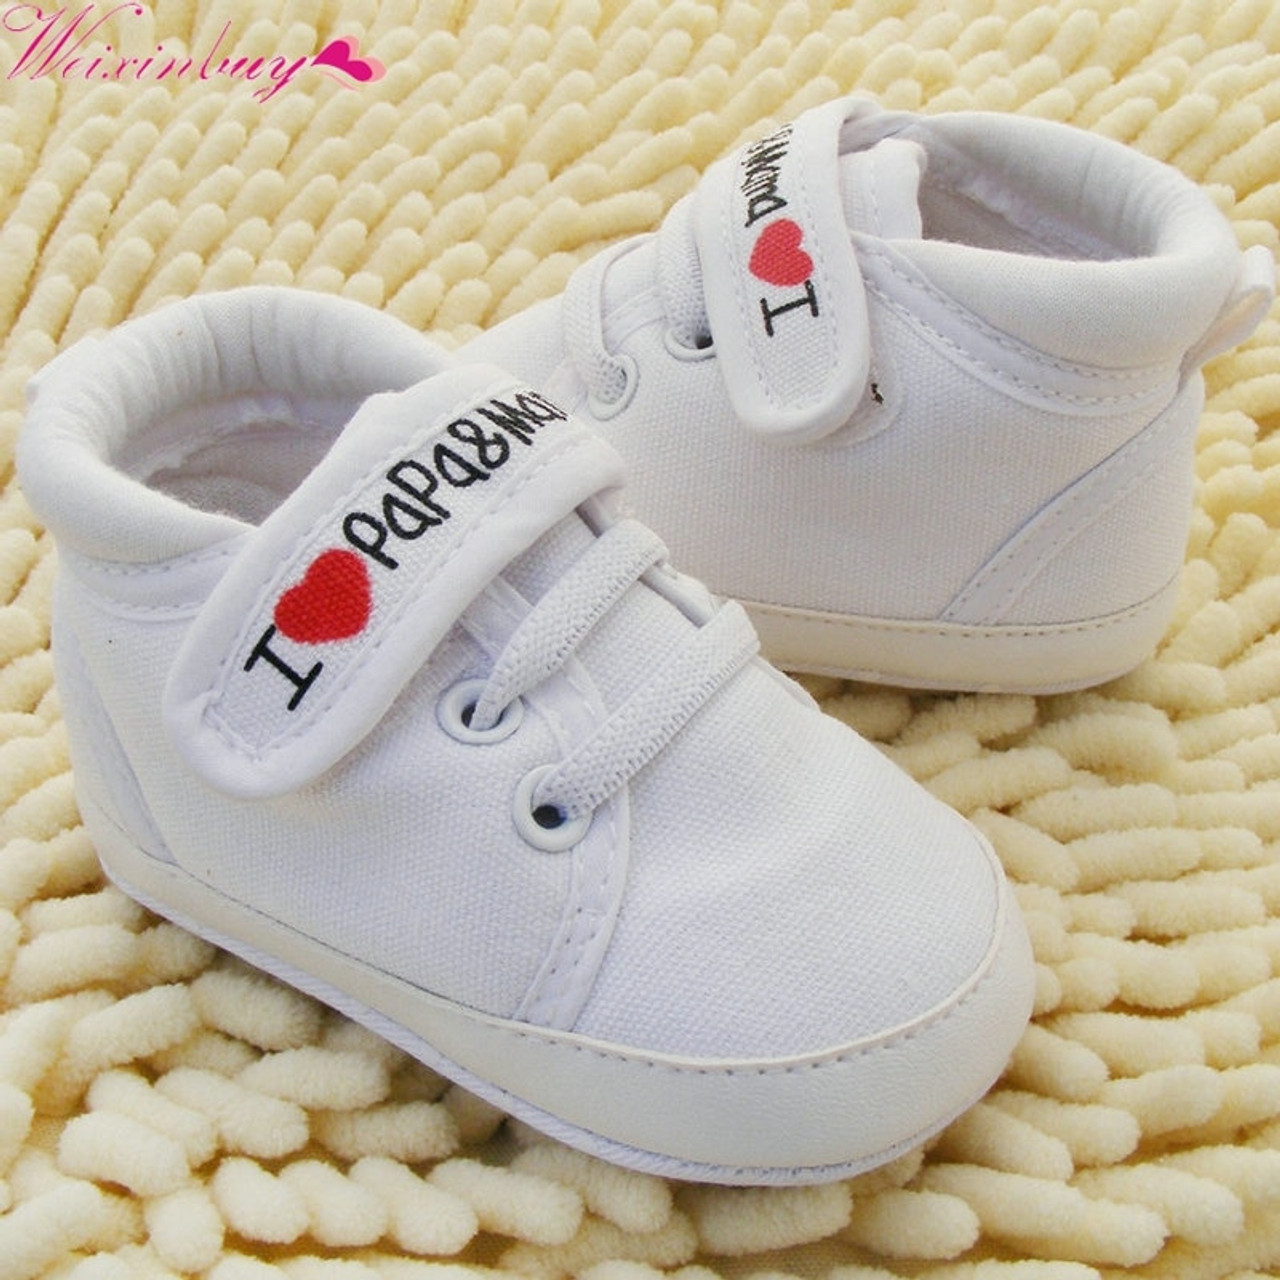 6ac7e8bd32f1 ... Toddler Newborn Shoes Baby Infant Kids Boy Girl Soft Sole Canvas Sneaker  0-18Months ...